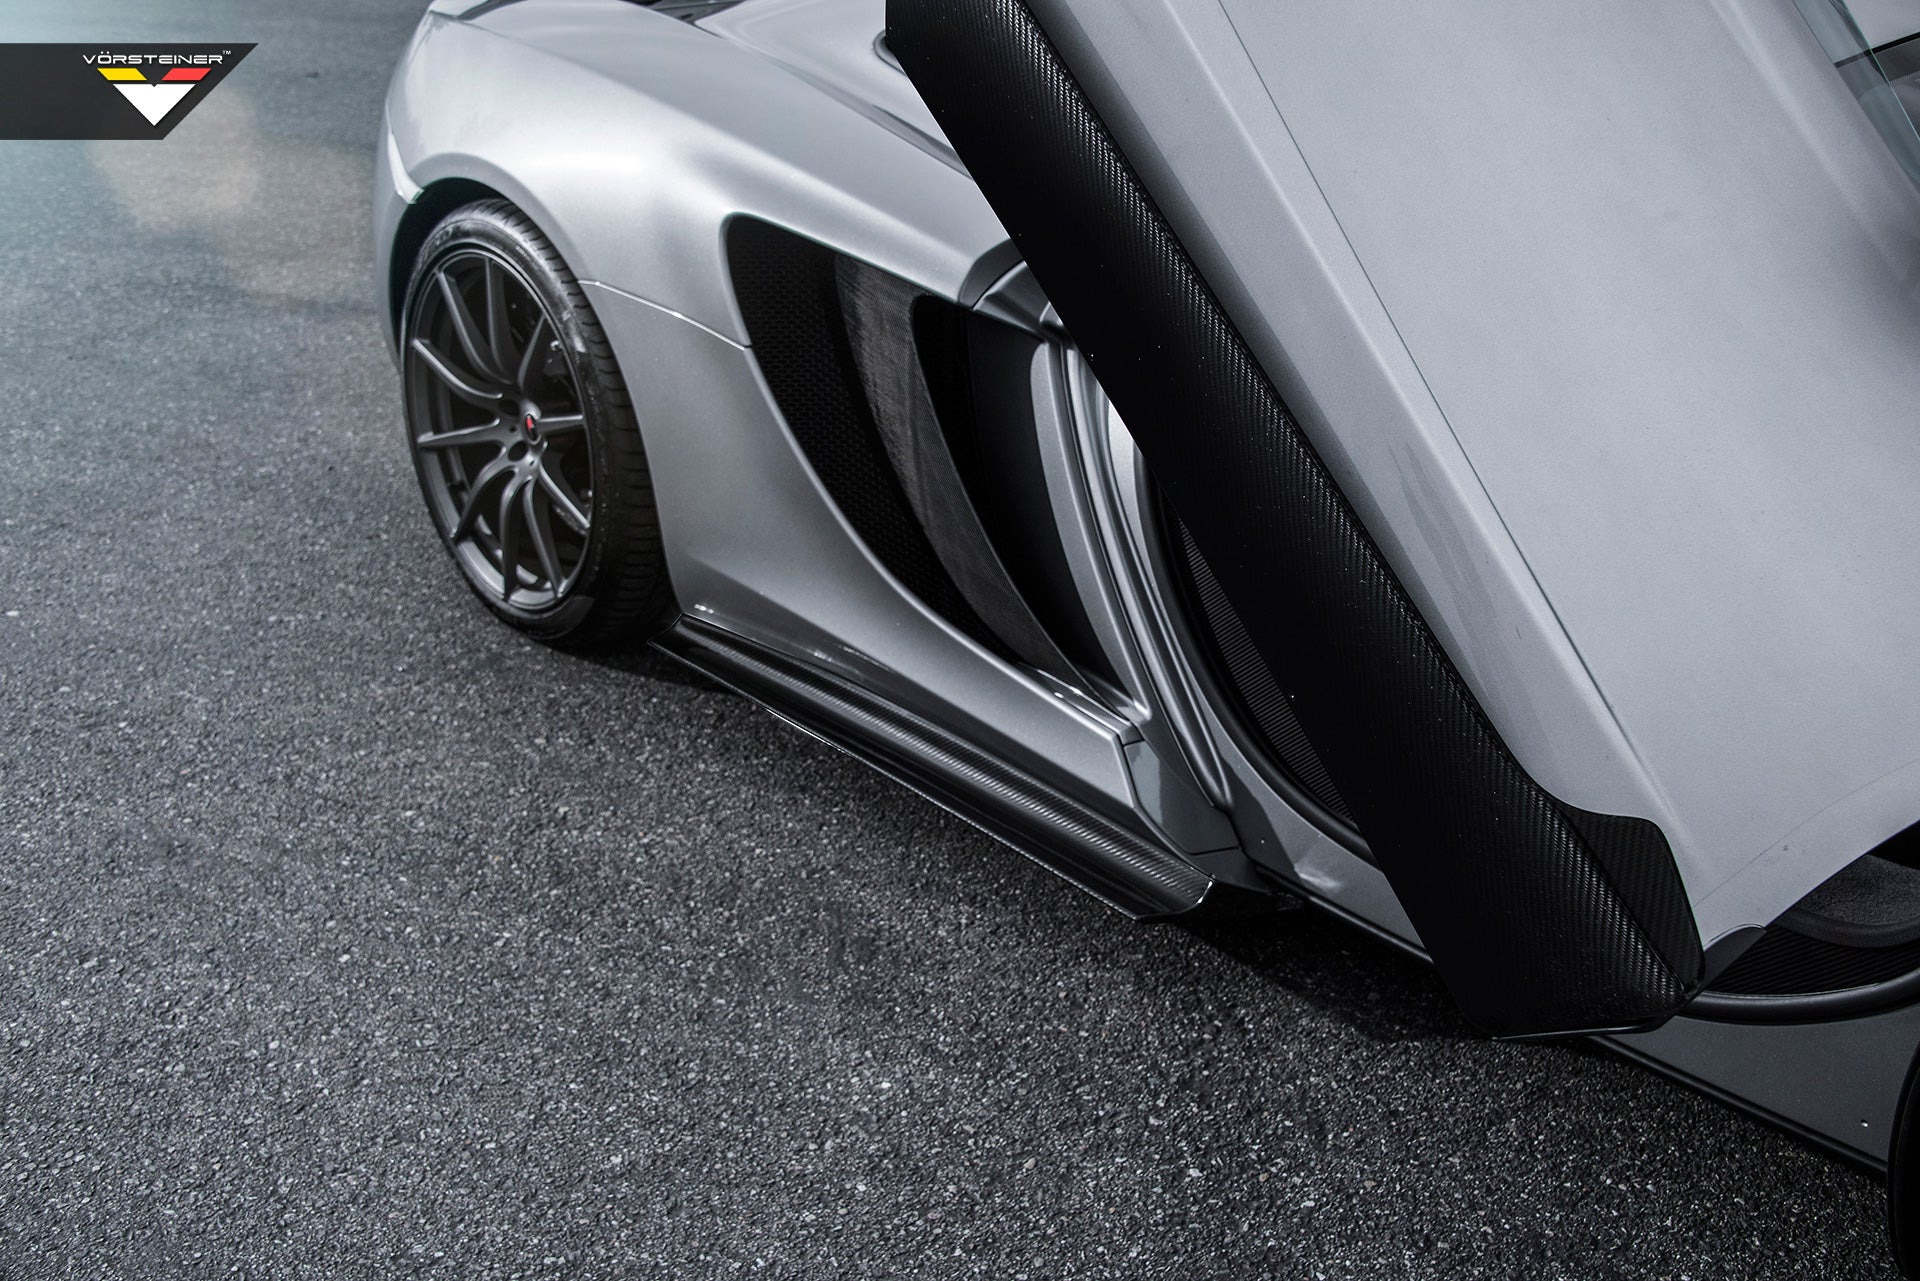 MCLAREN MP4-12c VORSTEINER AERO KIT